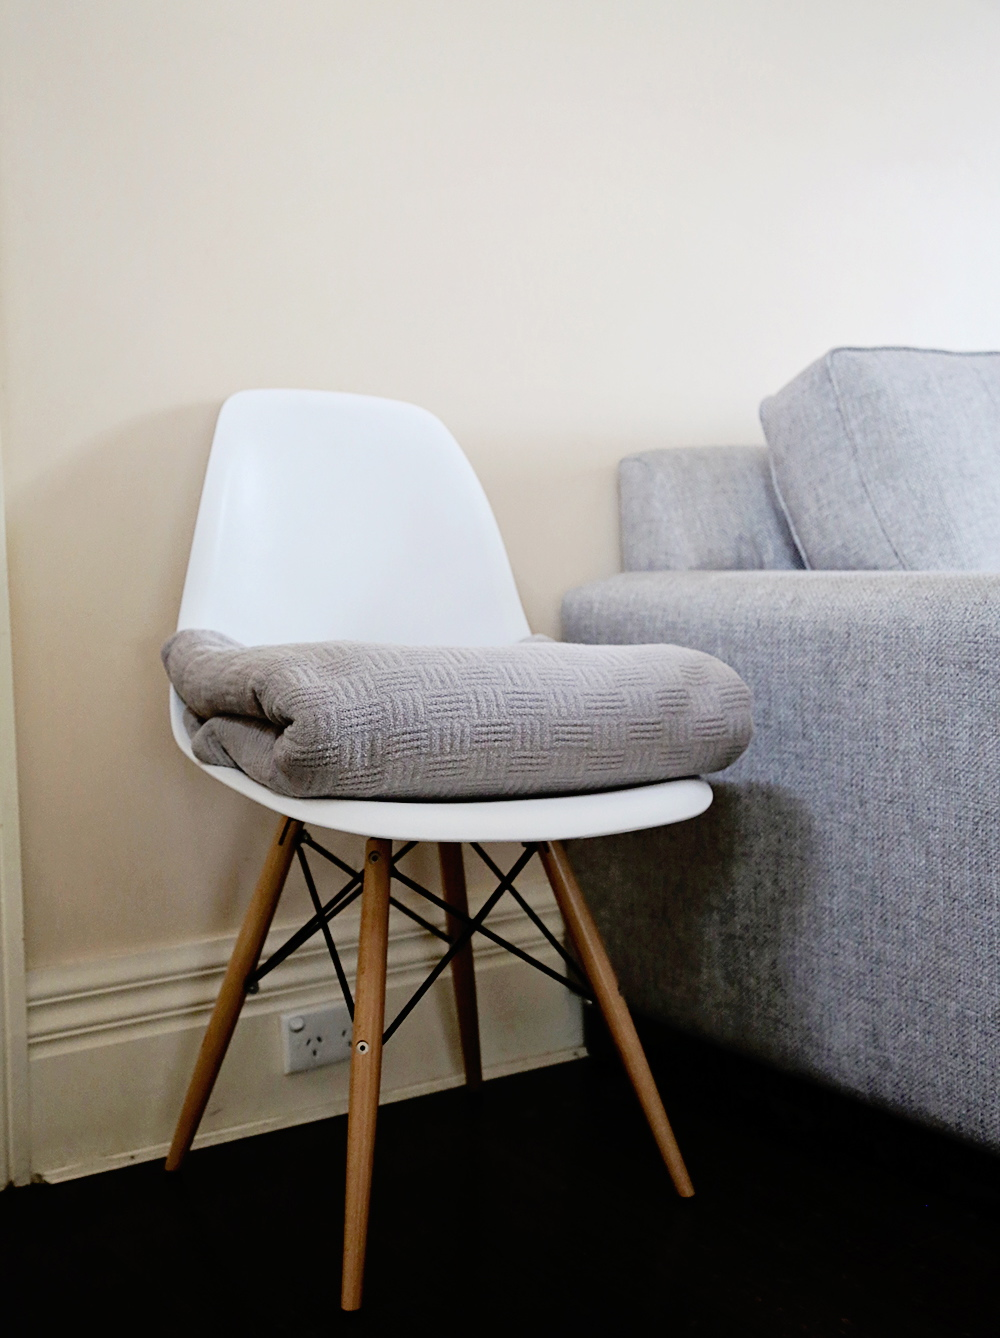 Amber Stapff's Scandi Style Living Room - White Chair and Quilt